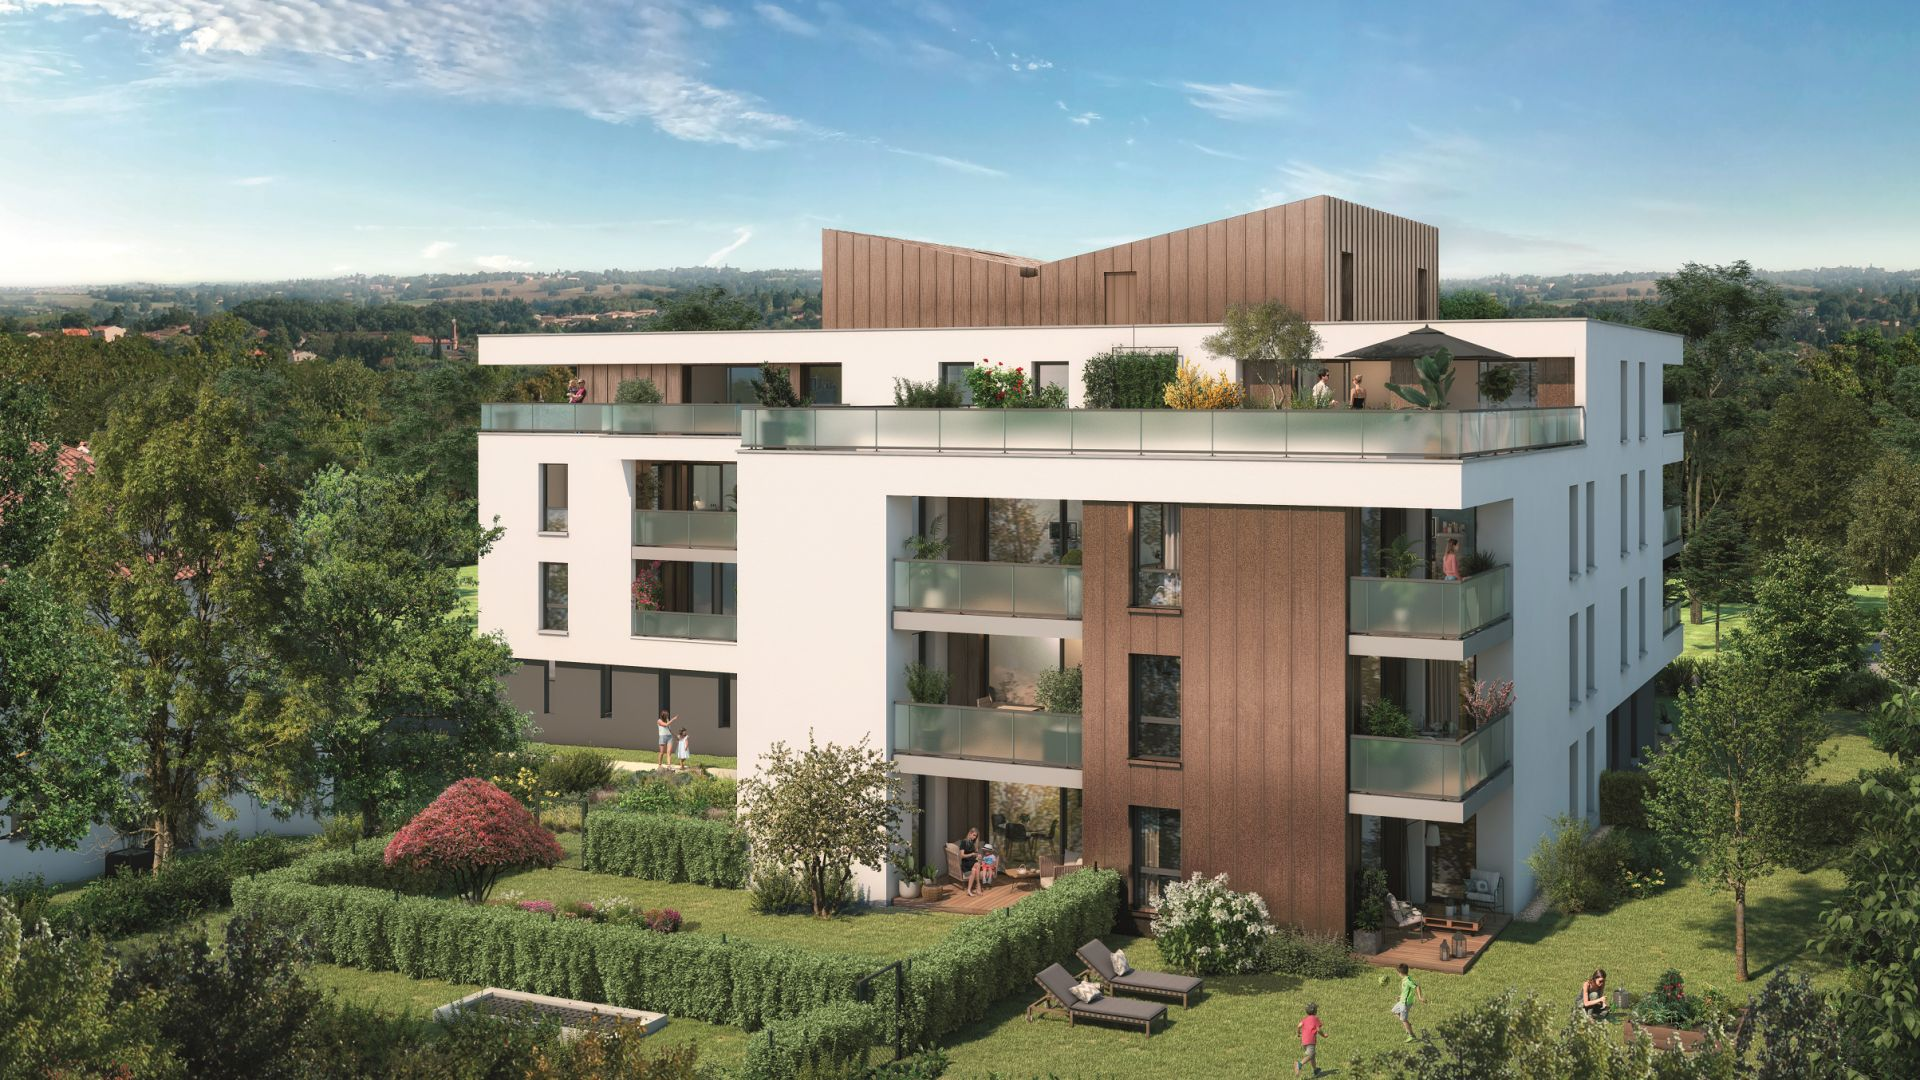 Greencity Immobilier - Grand Horizon - achat appartements du T2 au T4 duplex - Toulouse - Pech David 31400